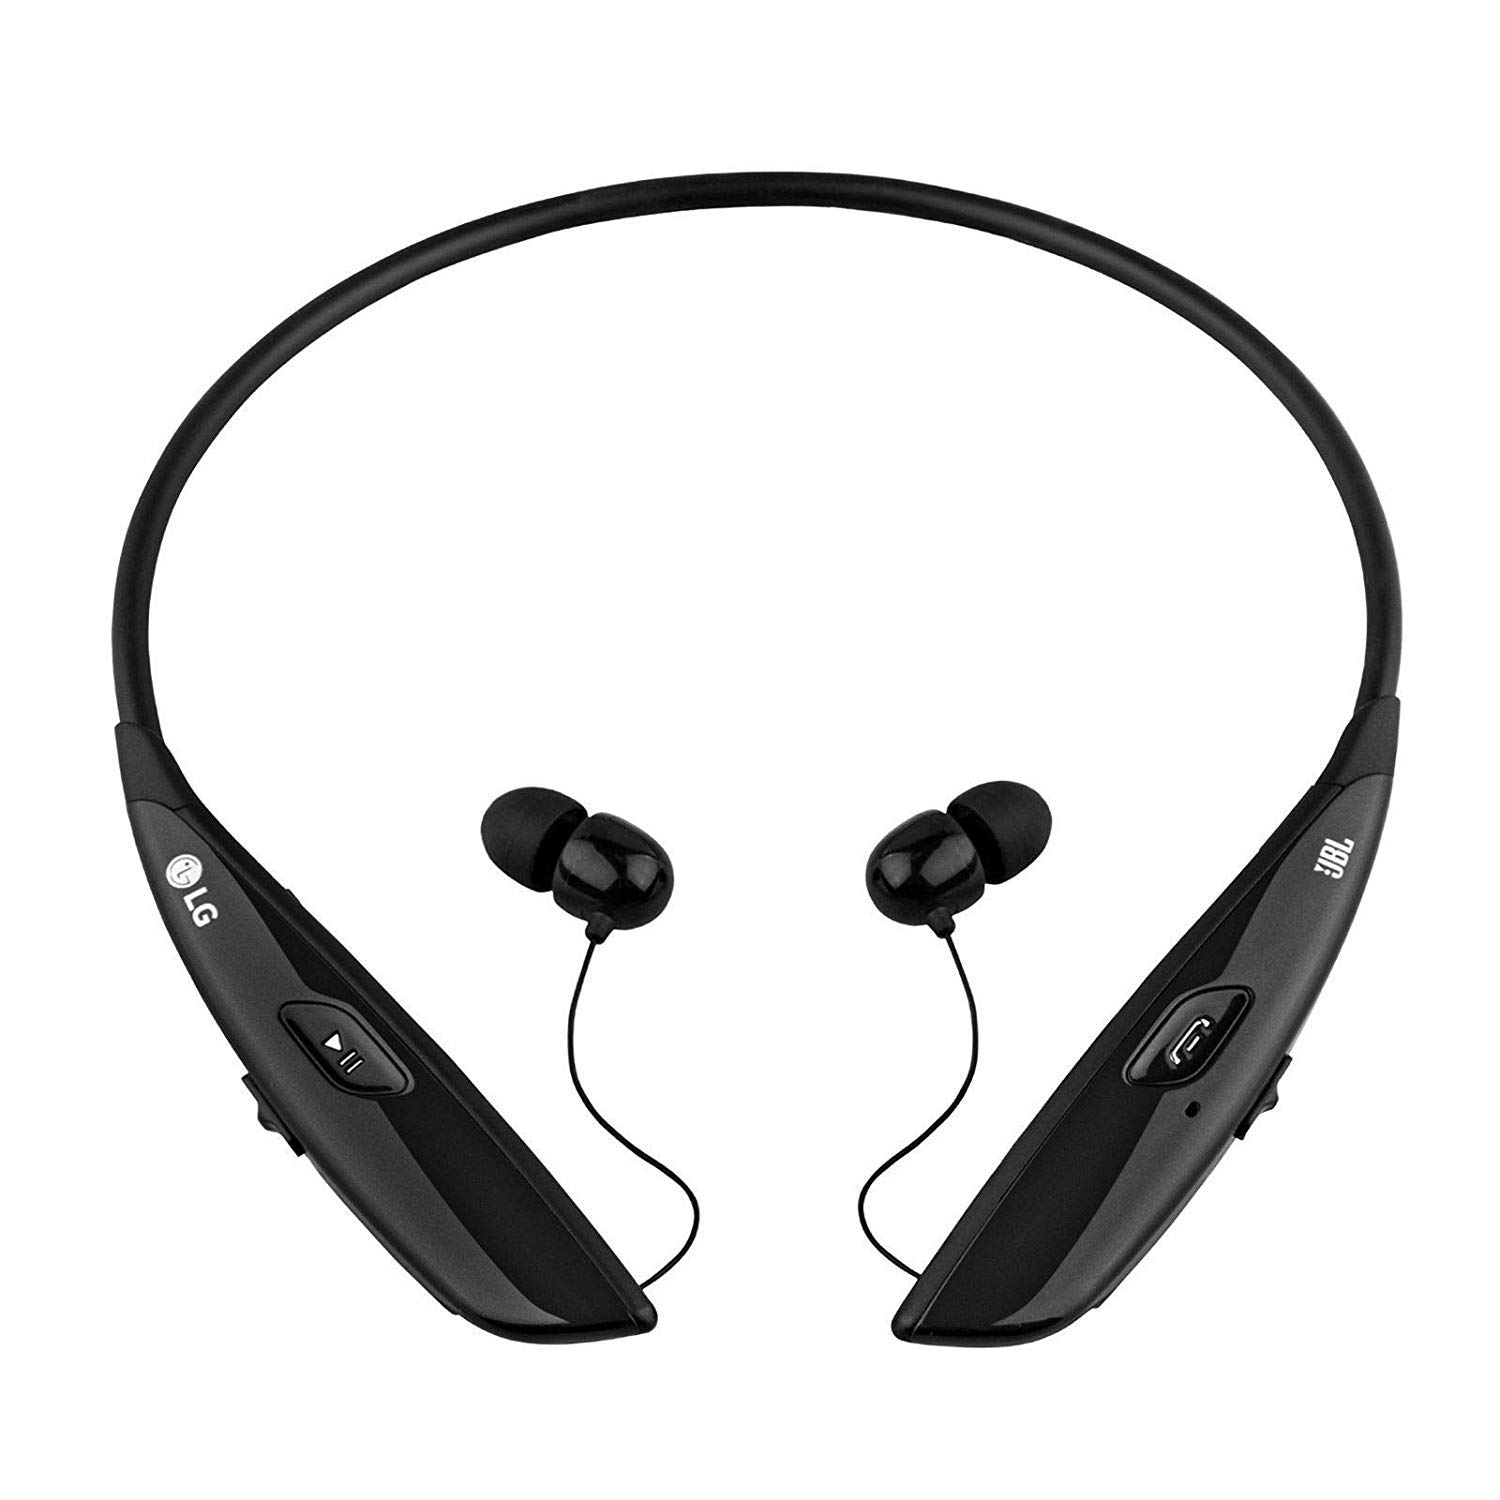 LG Electronics Tone Ultra HBS-810 Bluetooth Wireless Stereo Headset - Retail Packaging - Black by LG